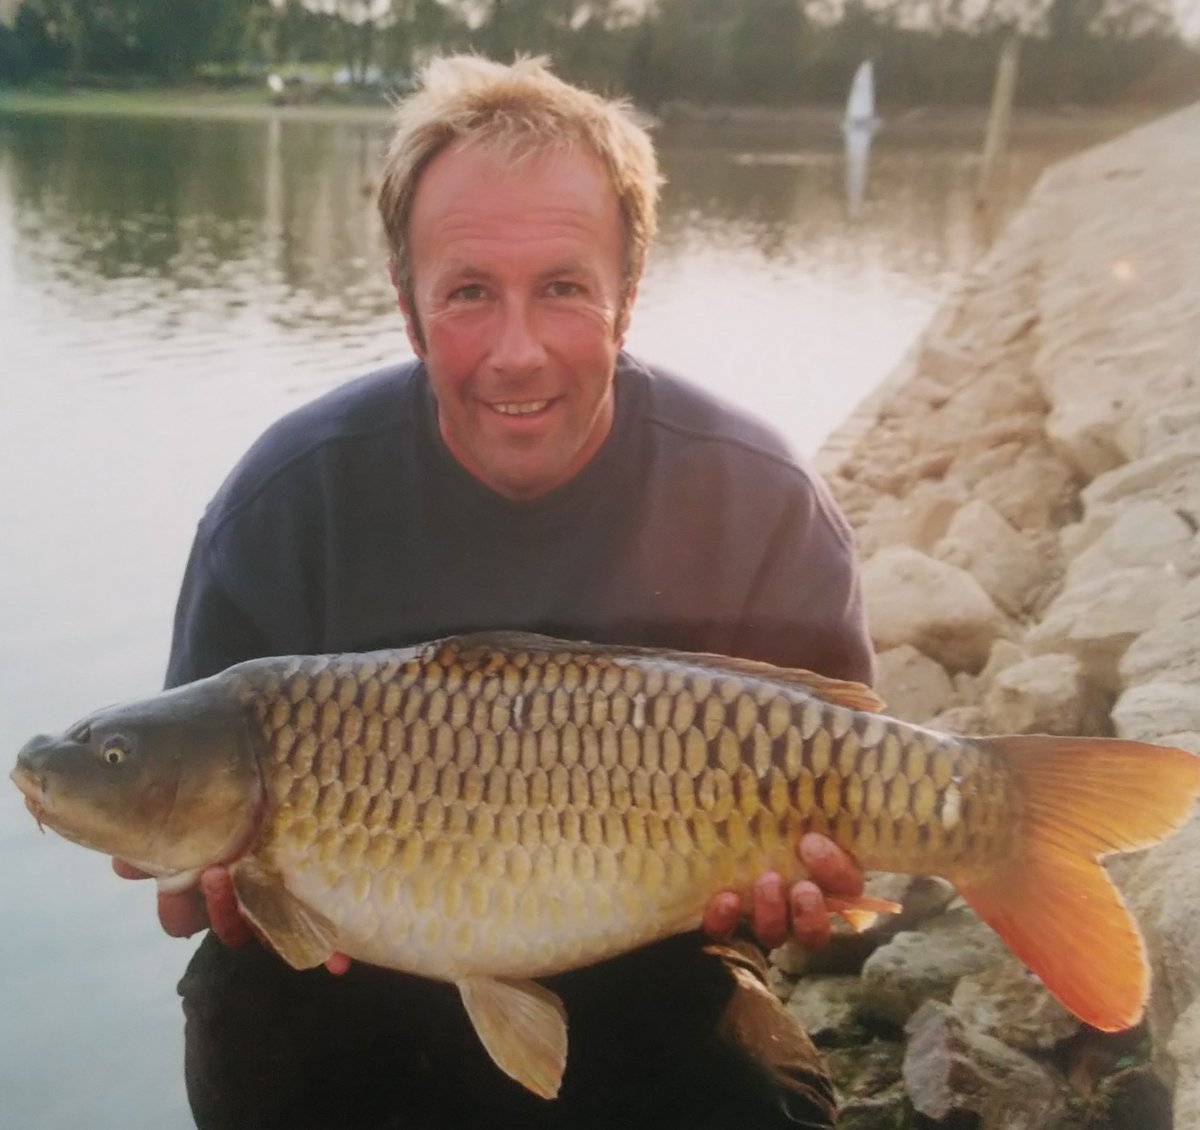 A younger me, and a common carp caught from Naseby <b>Reservoir</b>  #stillwater #carpfishing #Throw